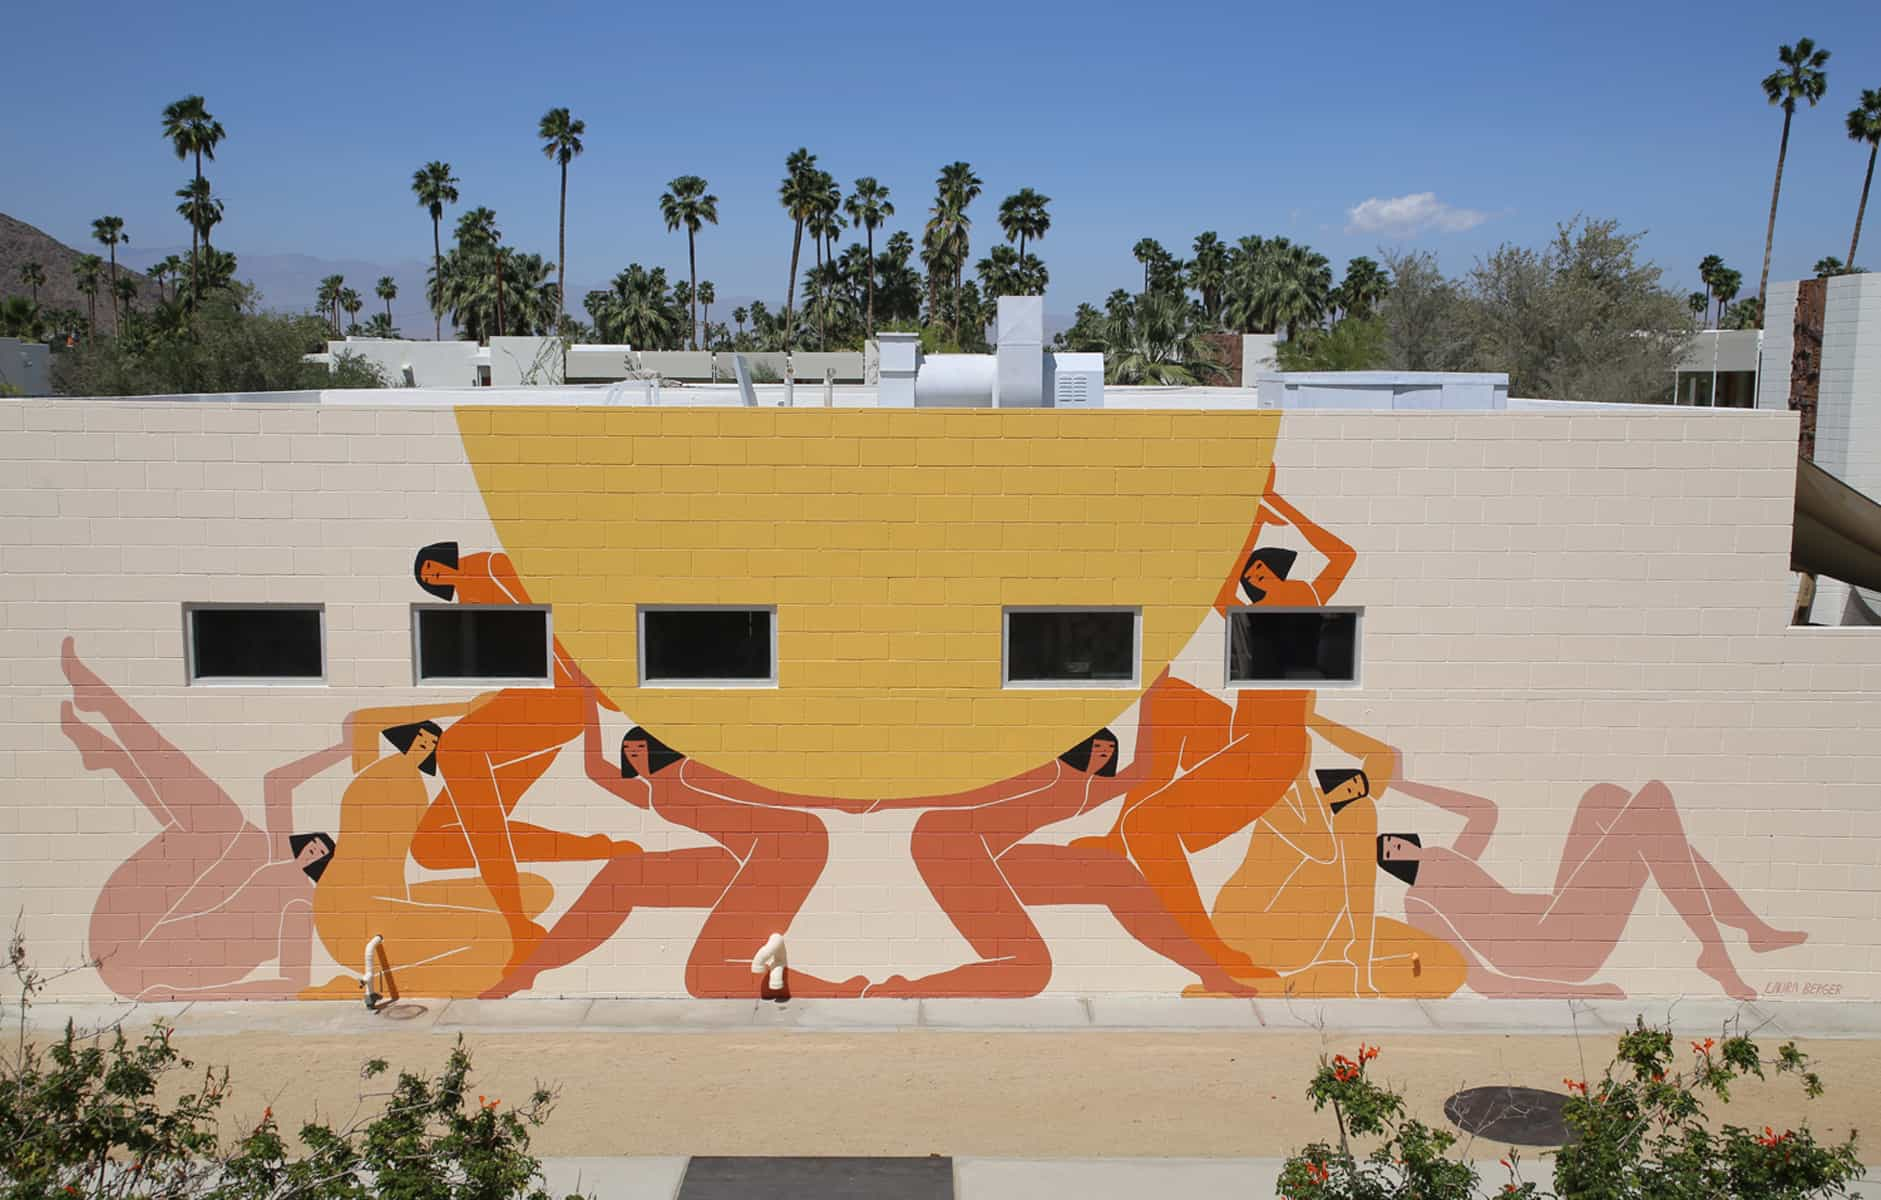 Ace hotel palm springs mural